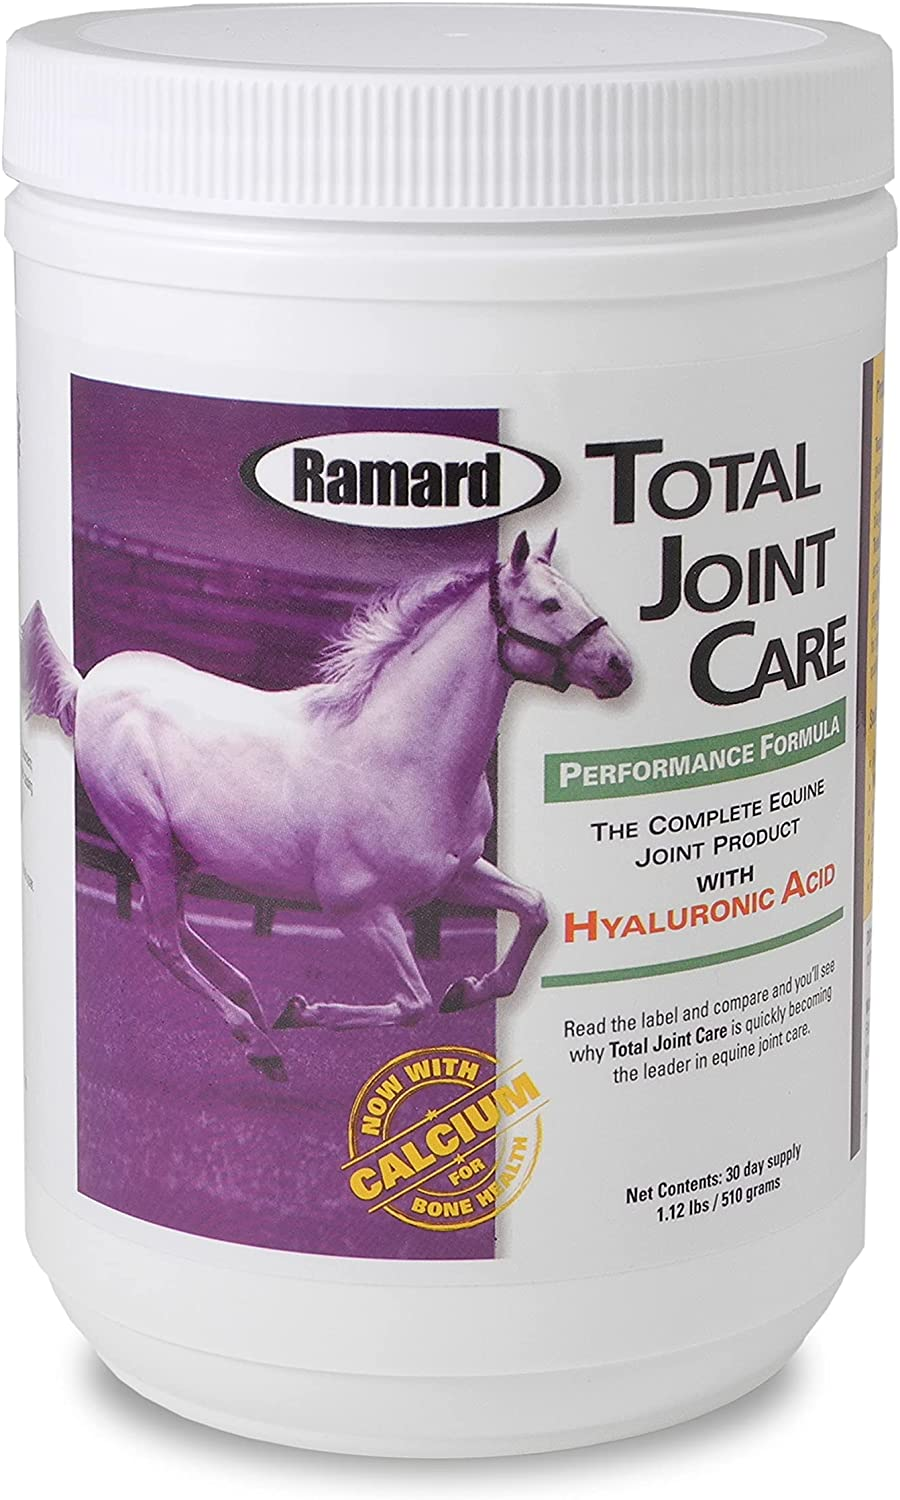 Ramard Total Joint Care Performance Supplements For Horses | Aids in Reducing Aching Joints | Replenshes Synovial Fluid in Horses and Helps Reduce Inflamation, Discomfort, and Stiffness : Horse Nutritional Supplements And Remedies : Pet Supplies